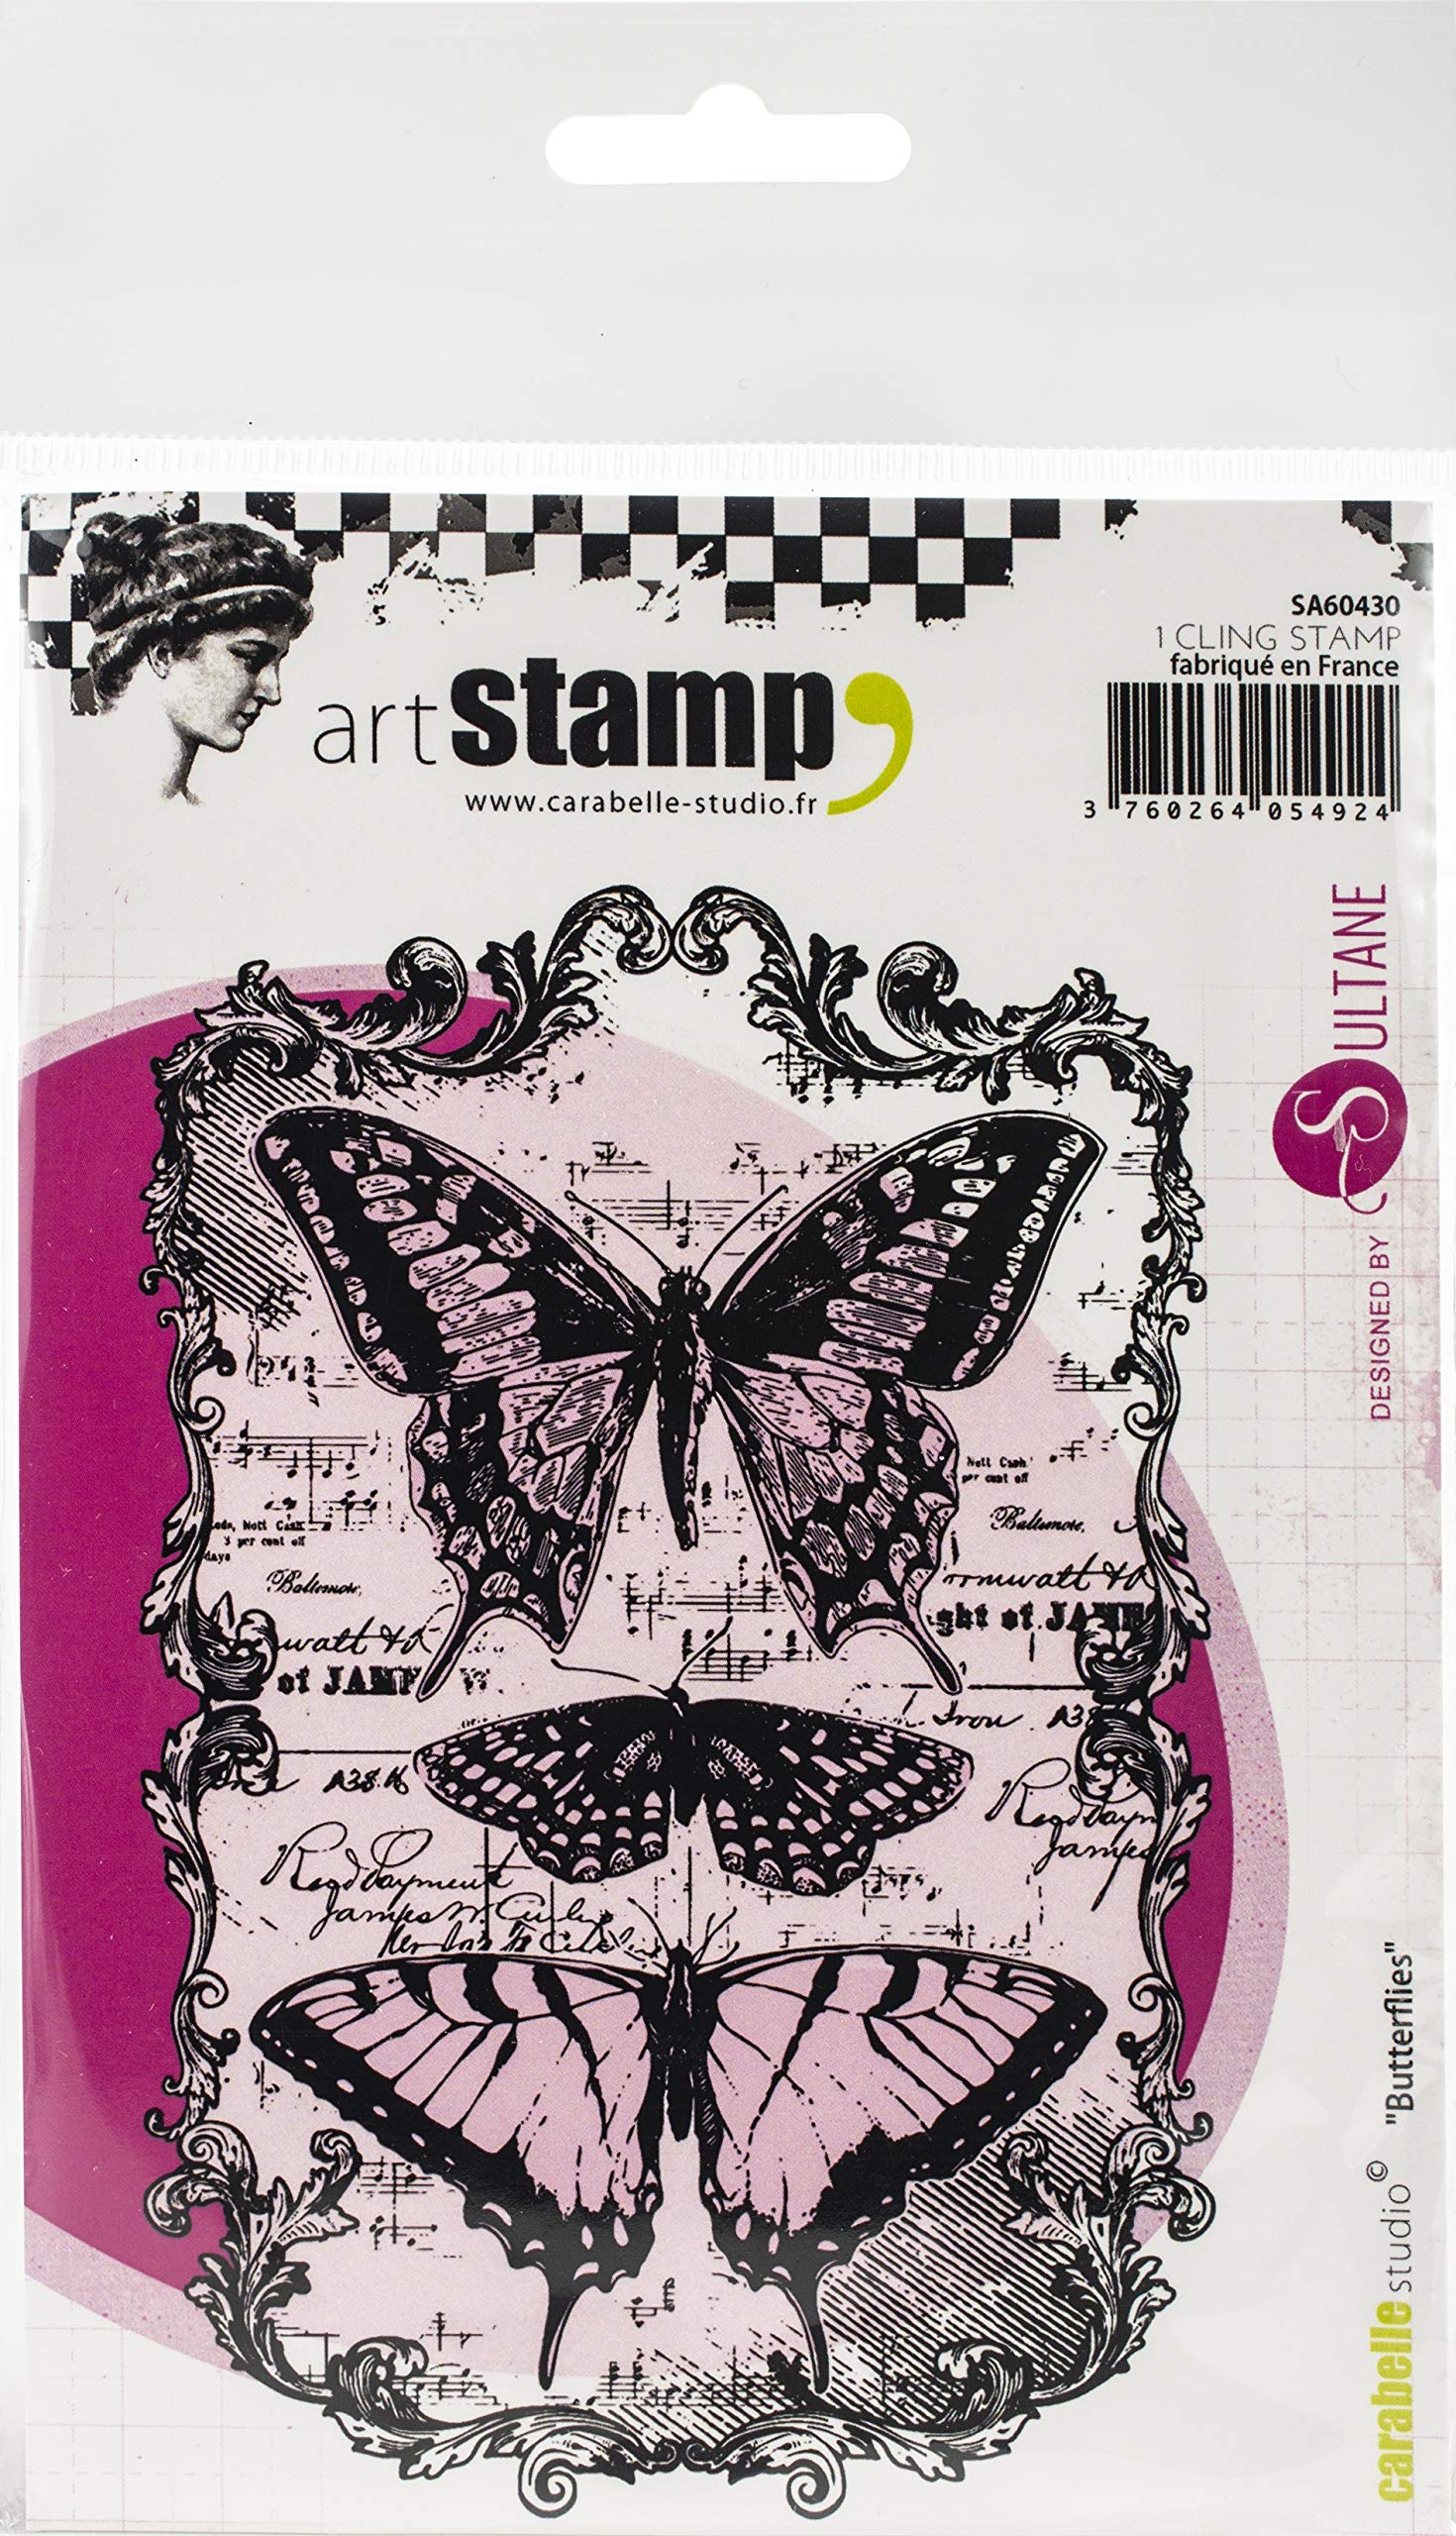 Carabelle Studios Cling Stamp A6 Butterflies, Multi-Colour, One Size